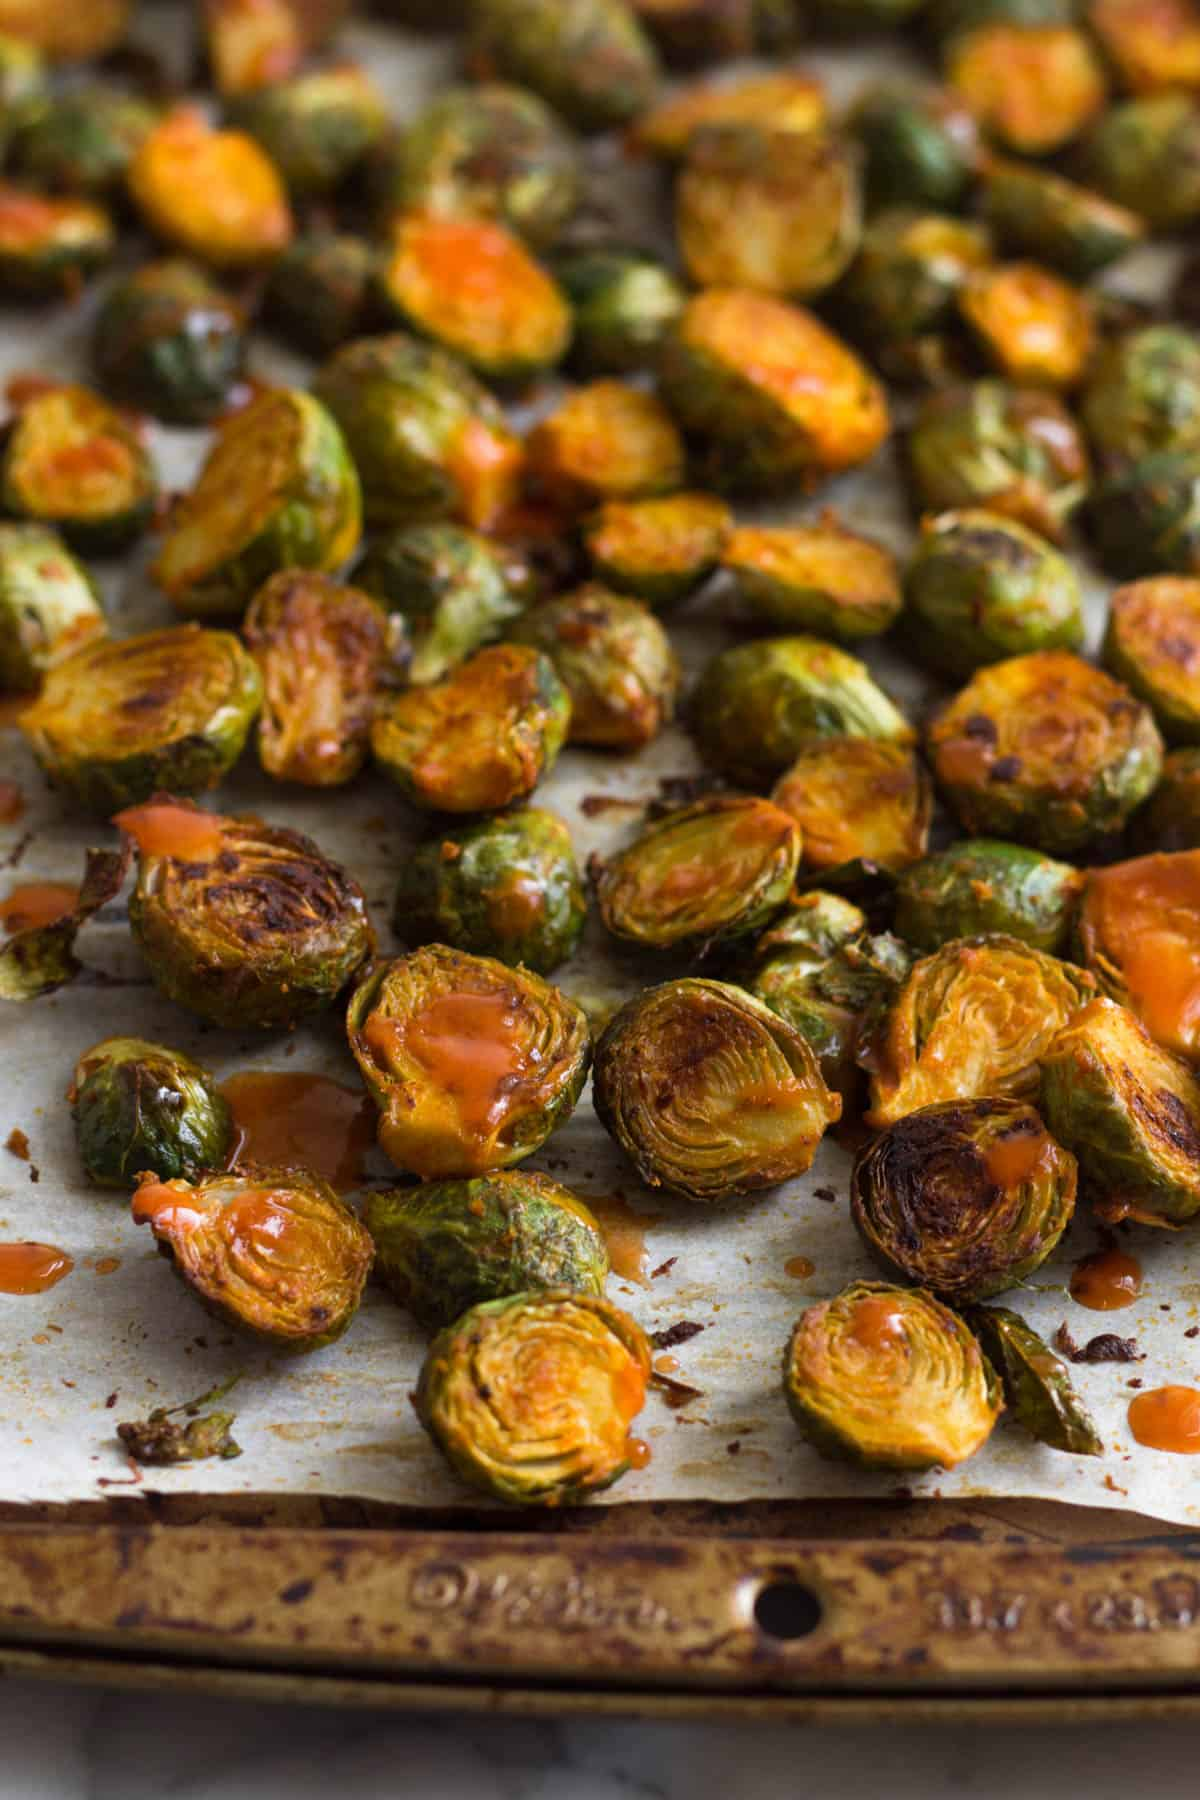 Pan of roasted buffalo brussel sprouts drizzled with hot sauce